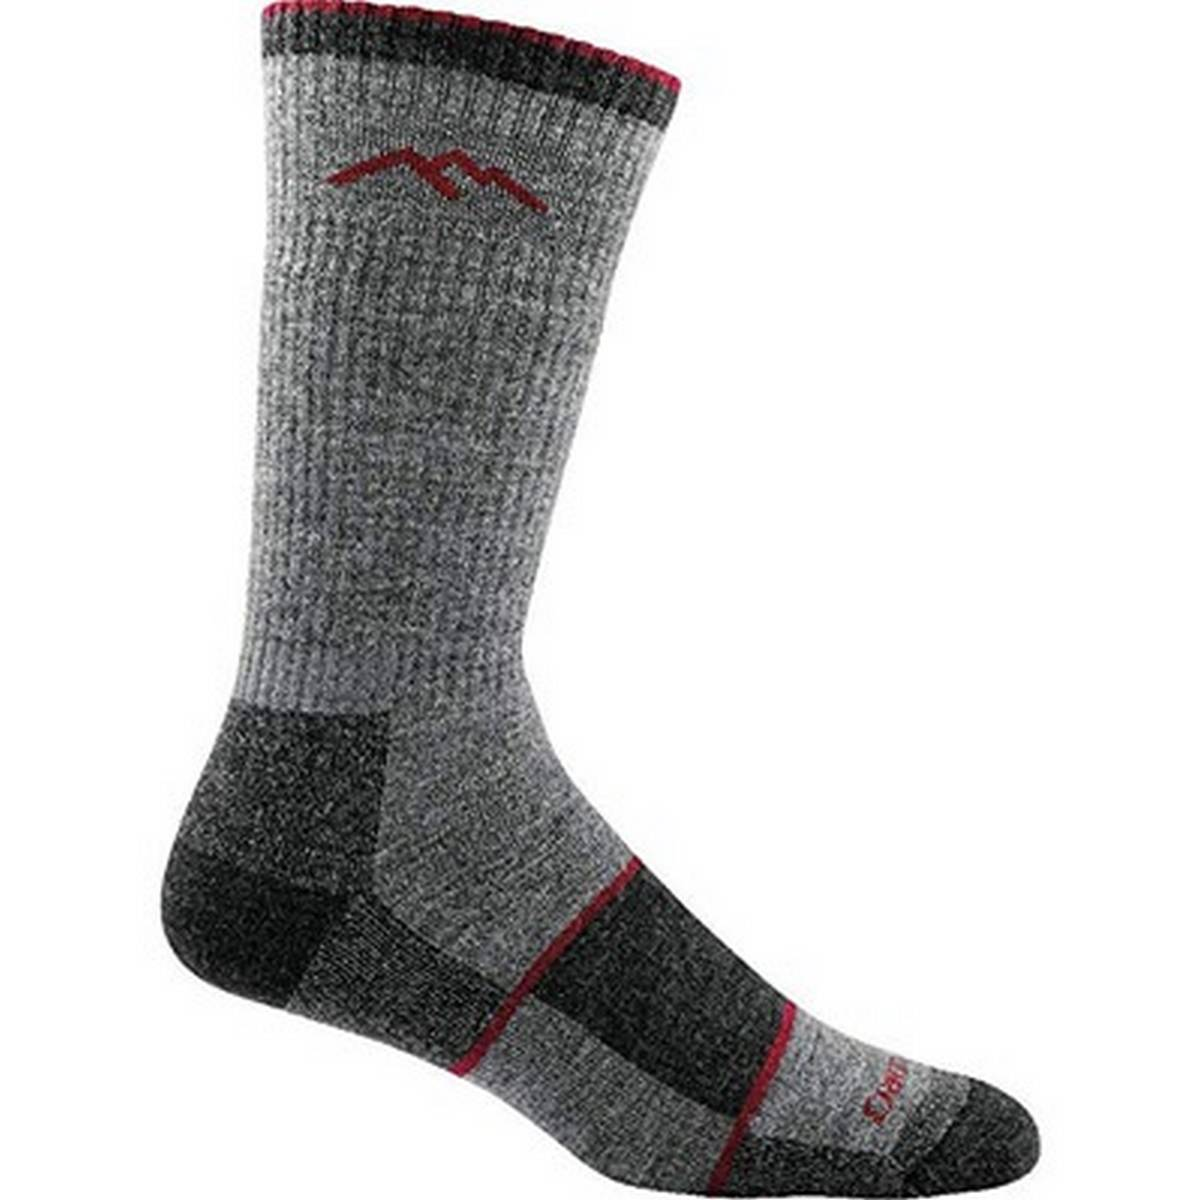 Thermal socks to keep your feet warm during the winter months, hiking, casual, work, and self heated.